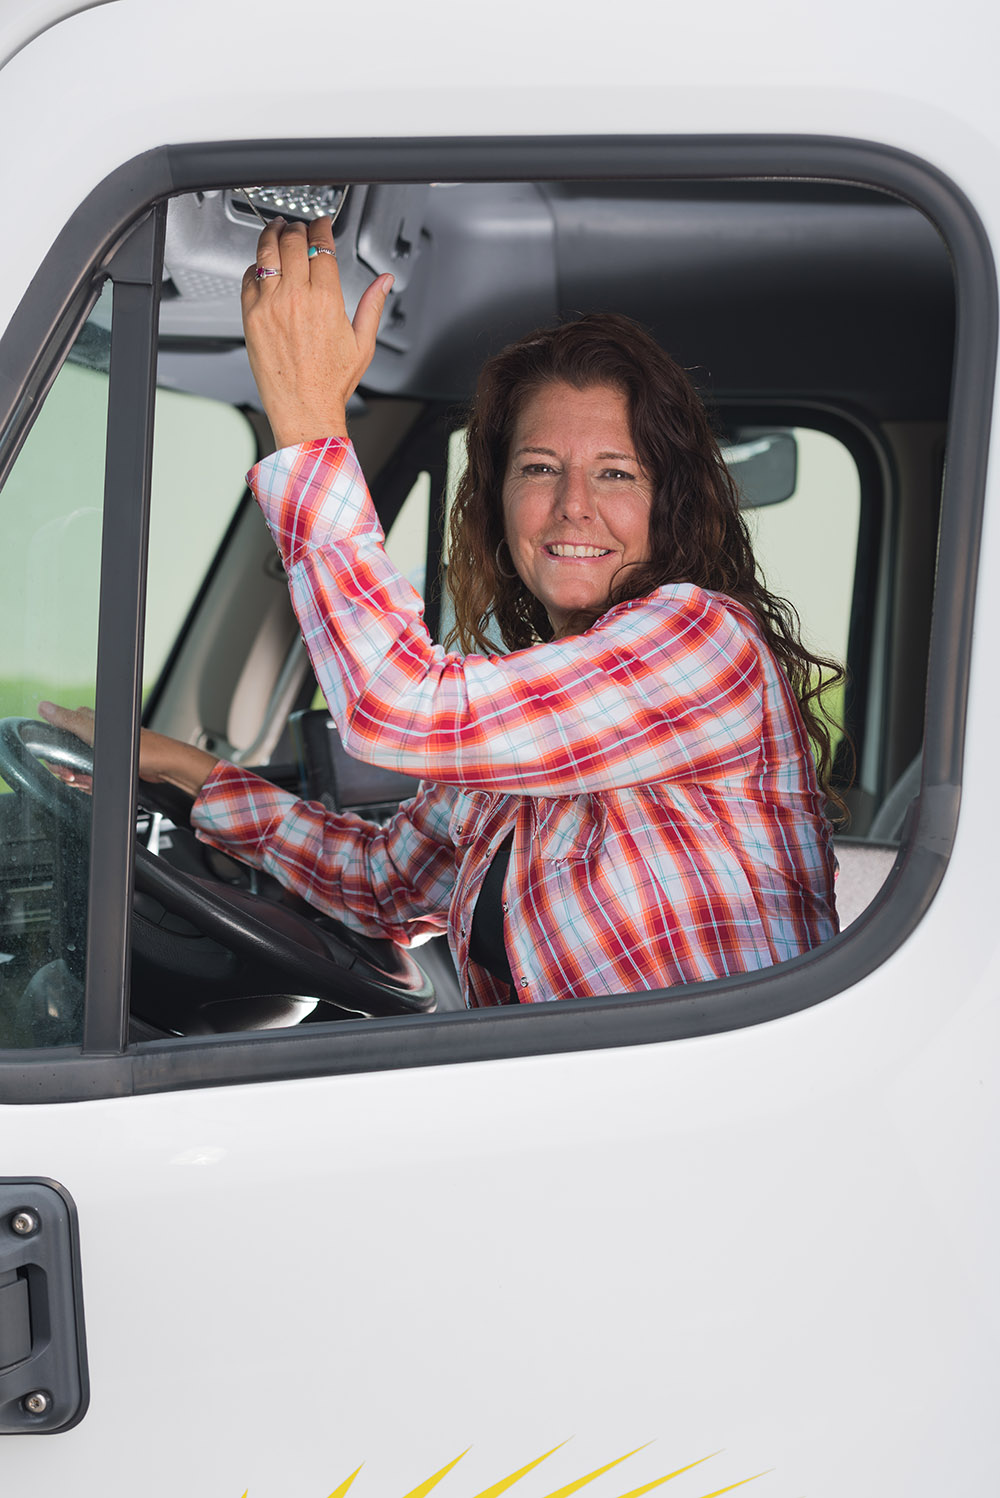 Truck driver dating sites in usa